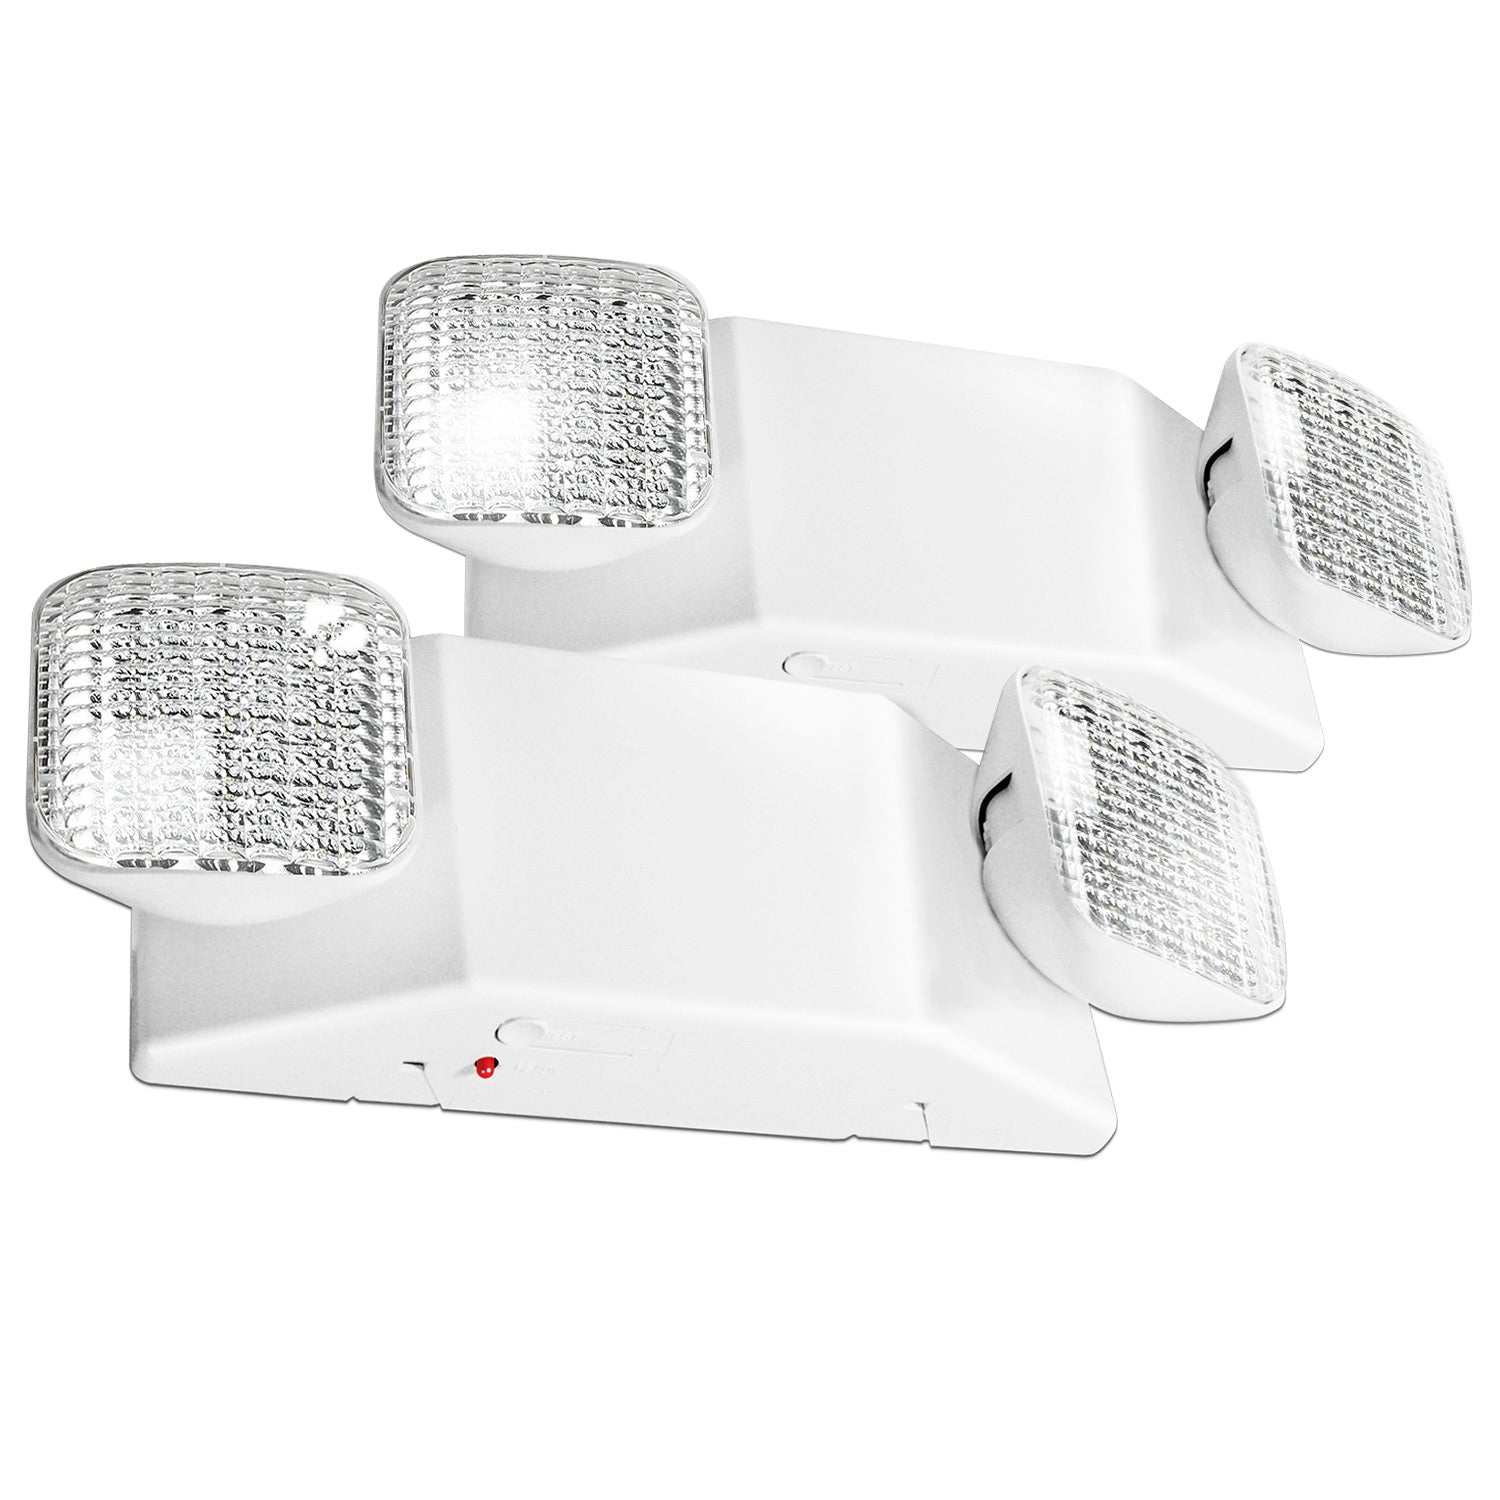 Etoplighting 2pcs x led emergency exit light fixture standard square head ul924 agg2460